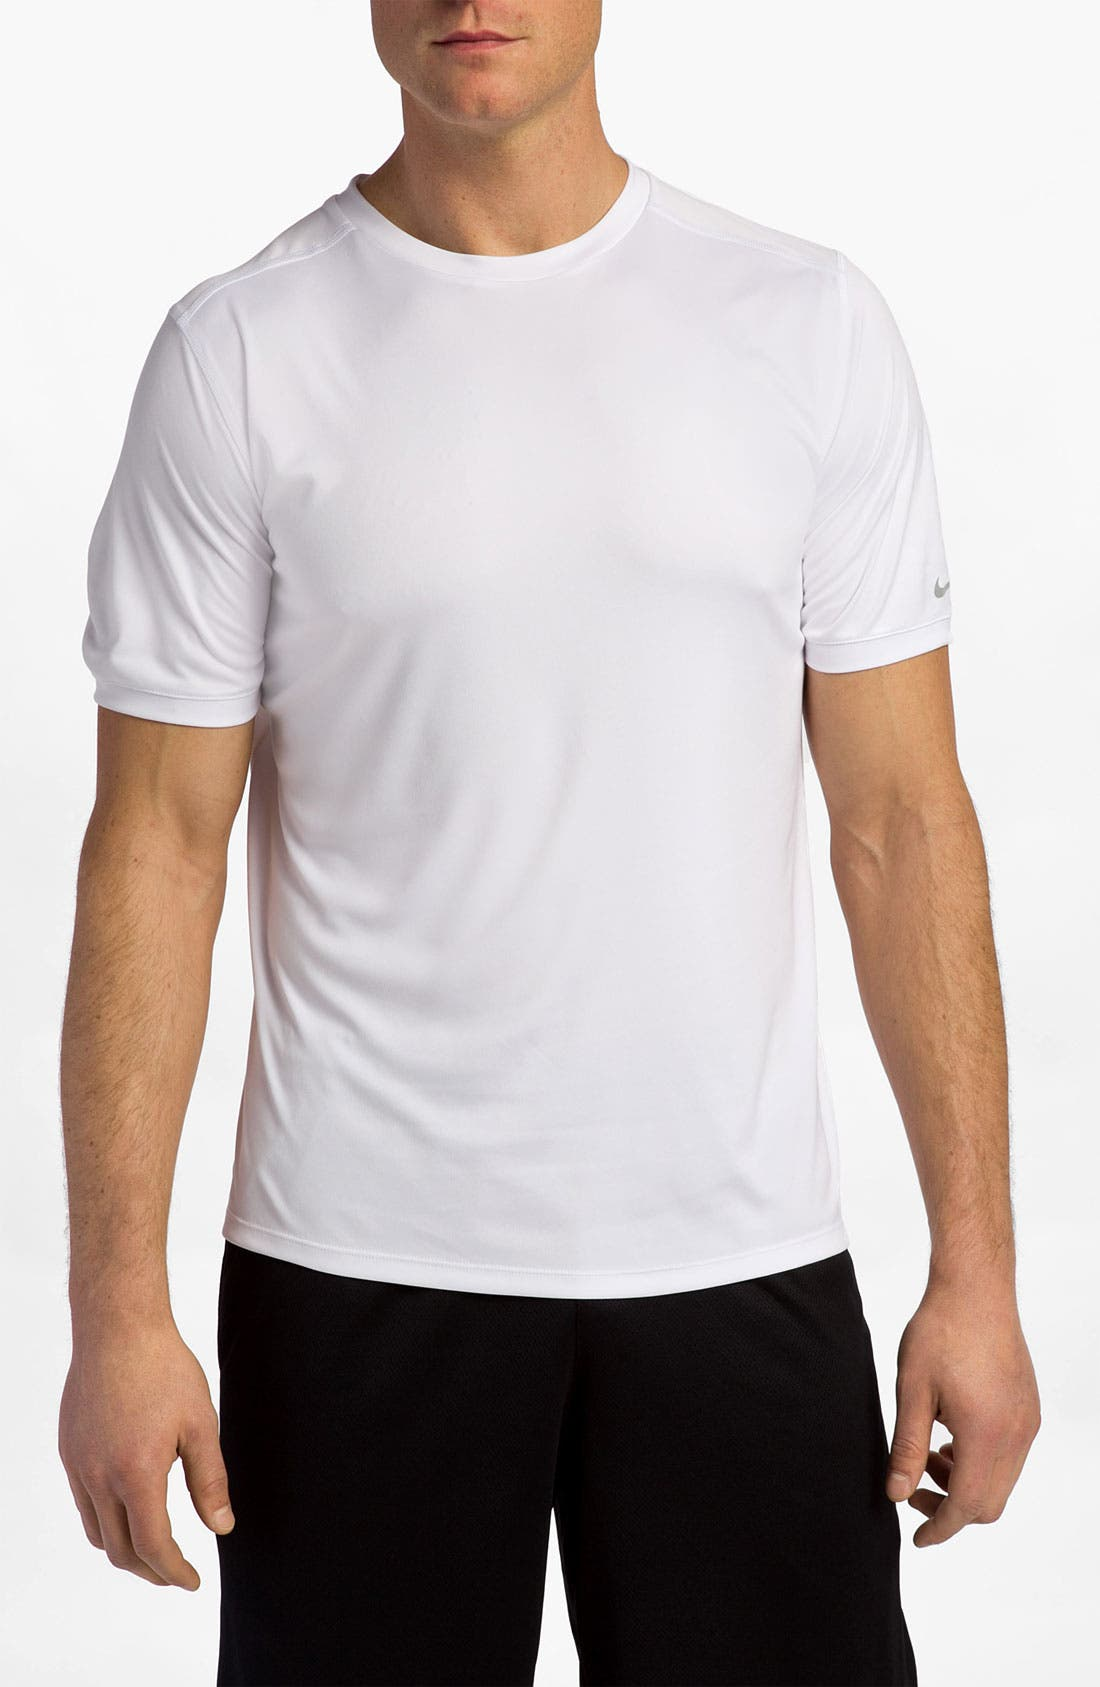 Alternate Image 1 Selected - Nike 'Relay' Dri-FIT T-Shirt